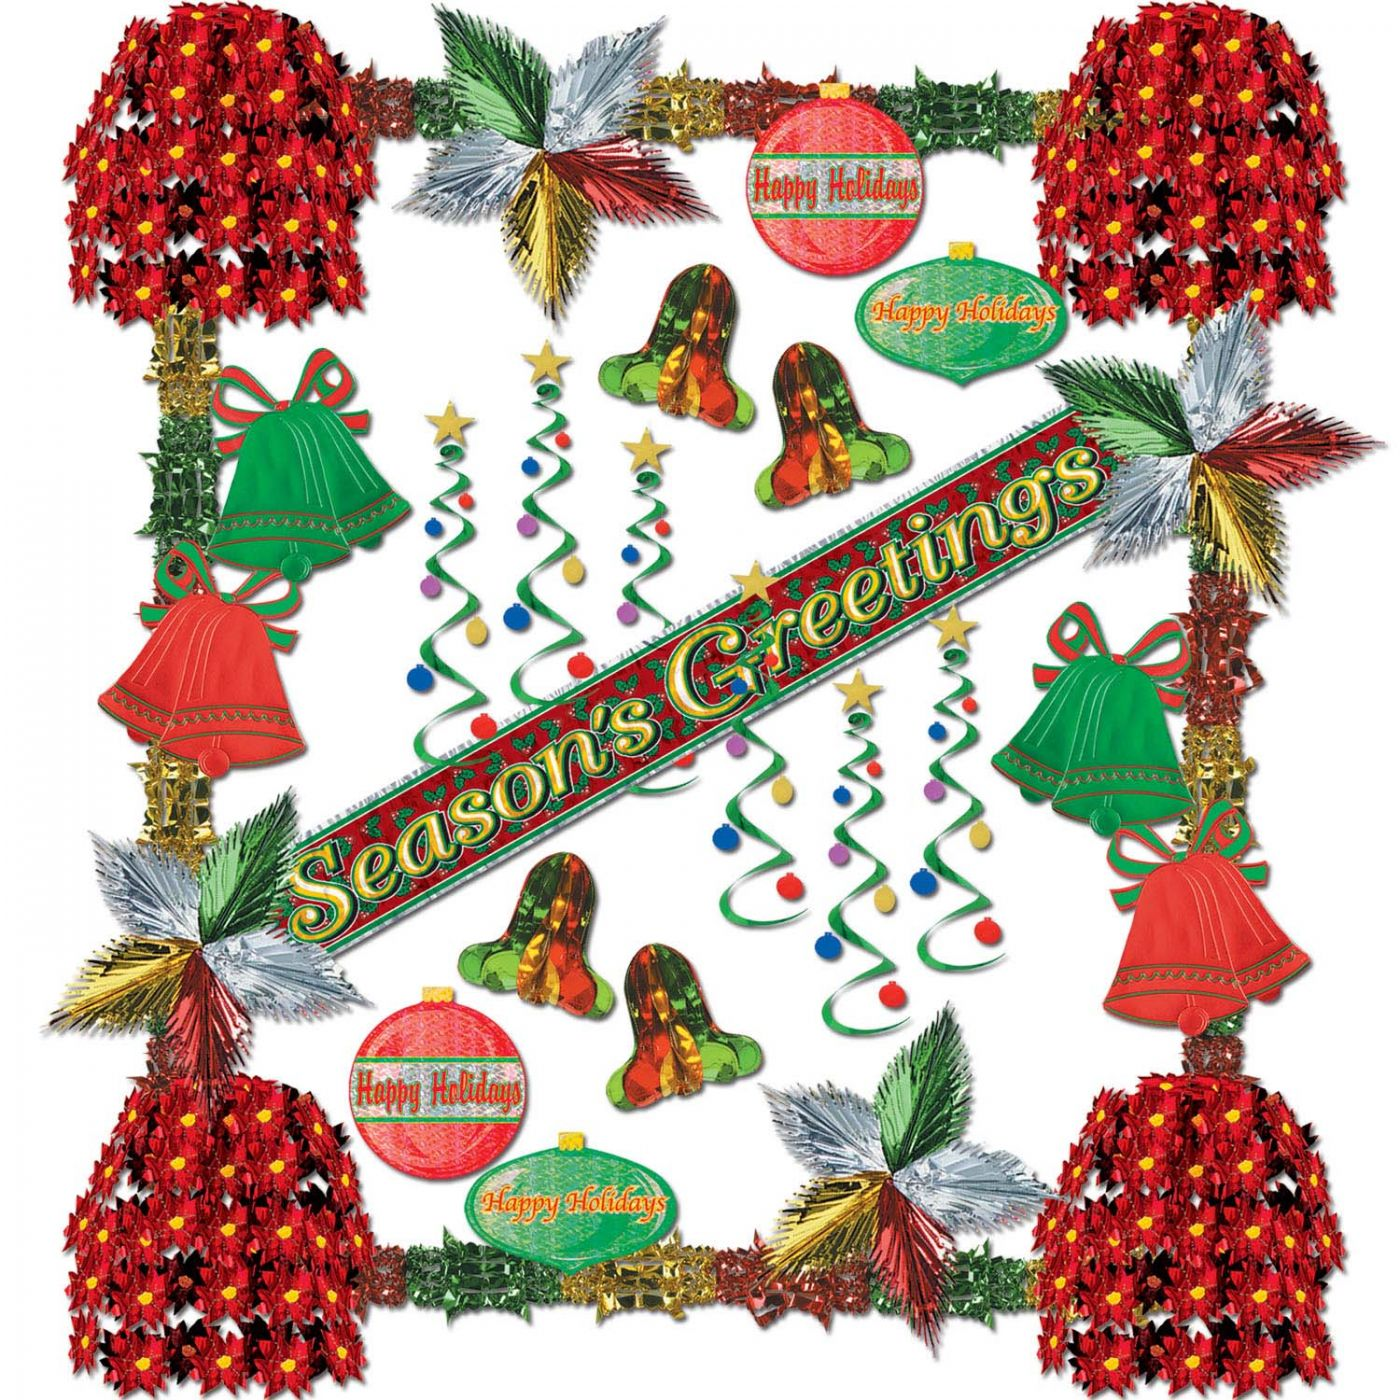 Season's Greetings Rflctns Dec Kit-31 Pc (1) image